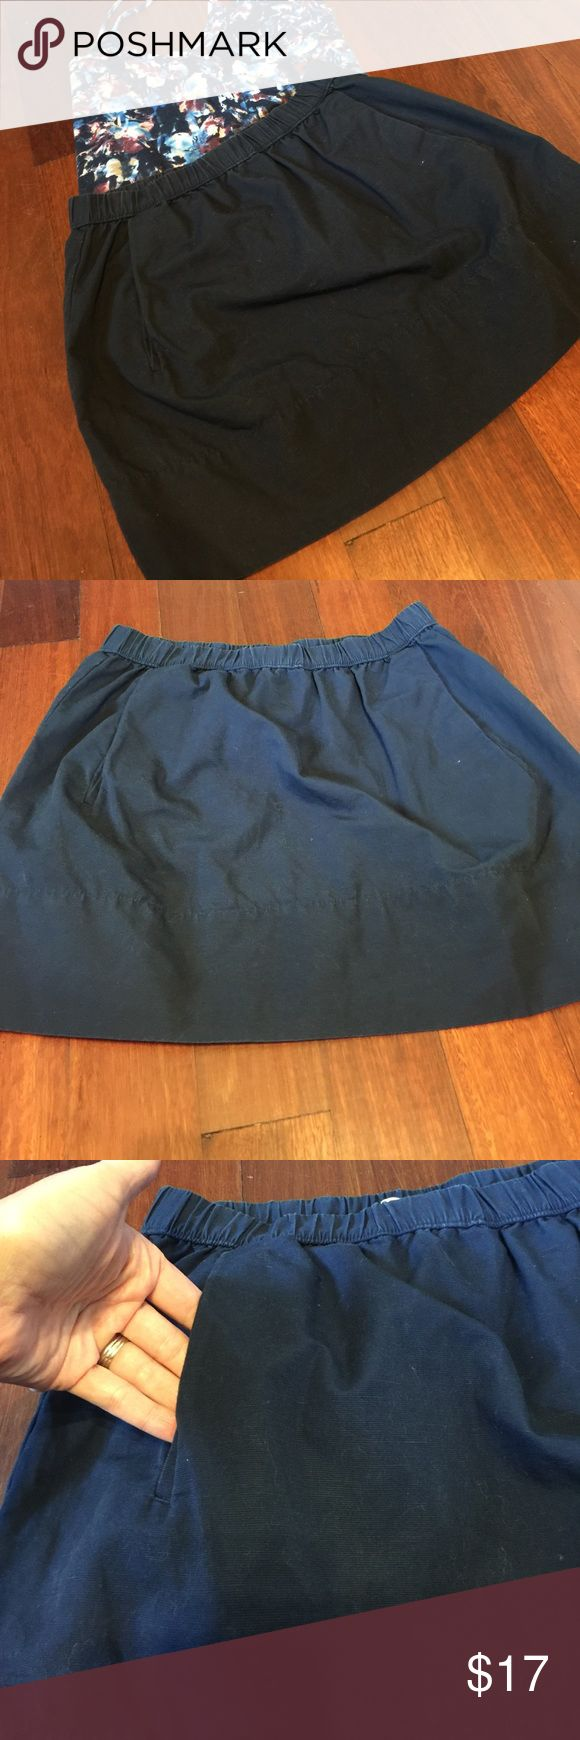 Navy GAP Skirt This is an adorable skirt from the GAP in a size XS. It is Navy in color with an elastic waist and pockets in the front. Please let me know if you have any questions. Thanks GAP Skirts